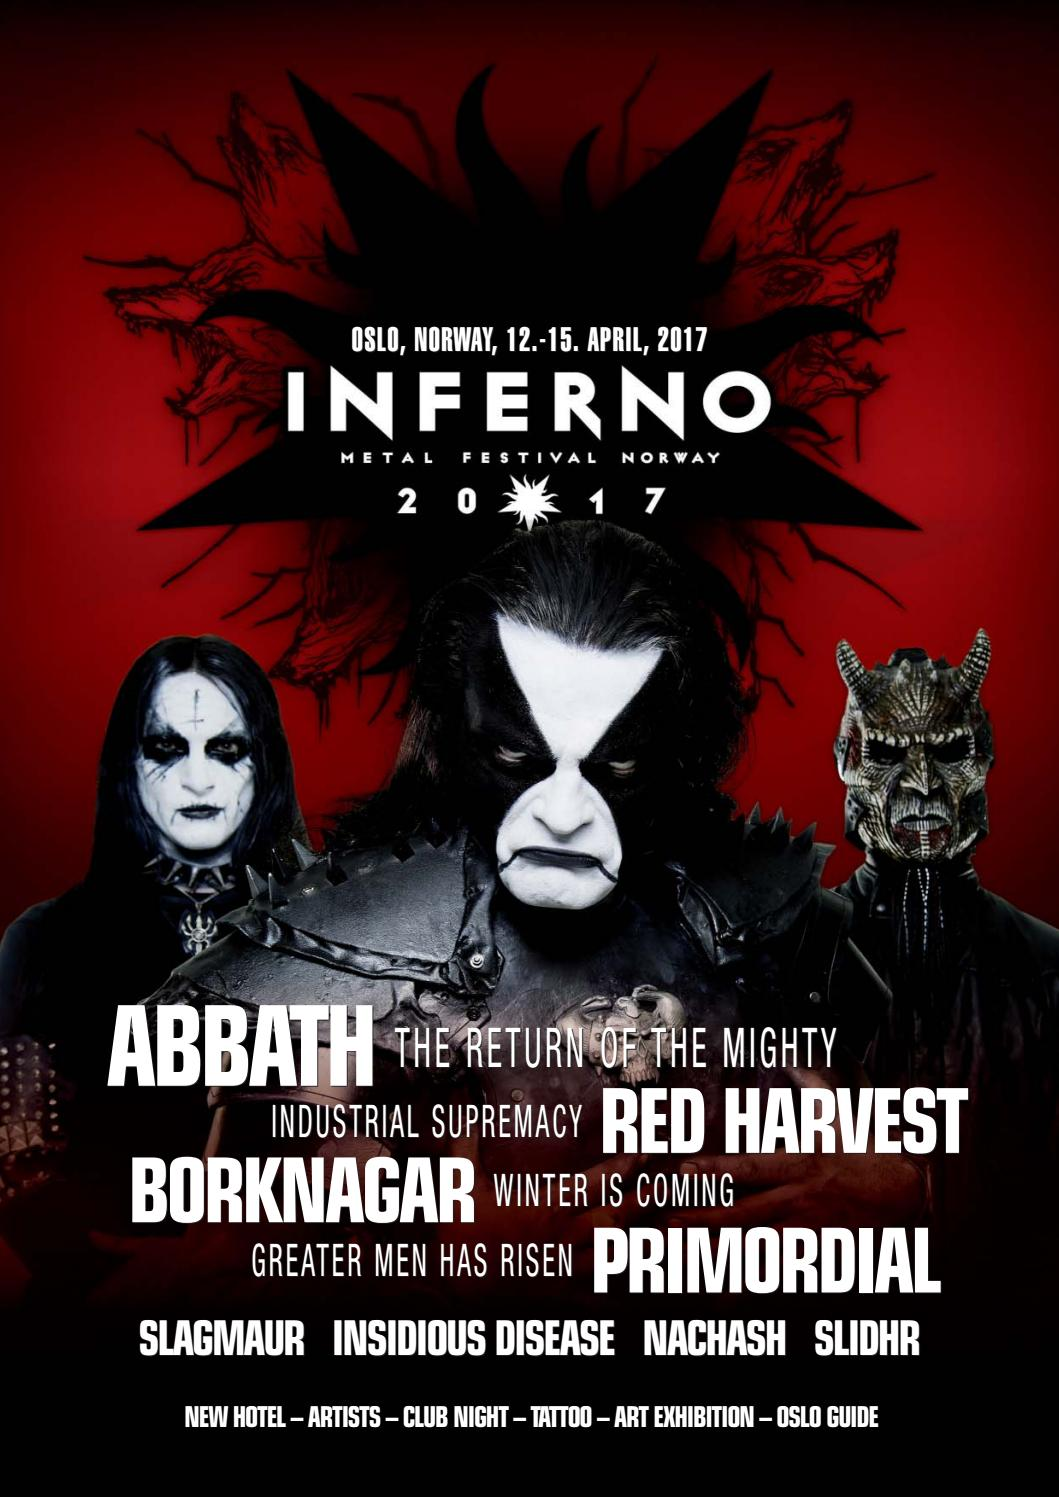 Inferno magazine 2017 by Inferno Metal Festival - issuu